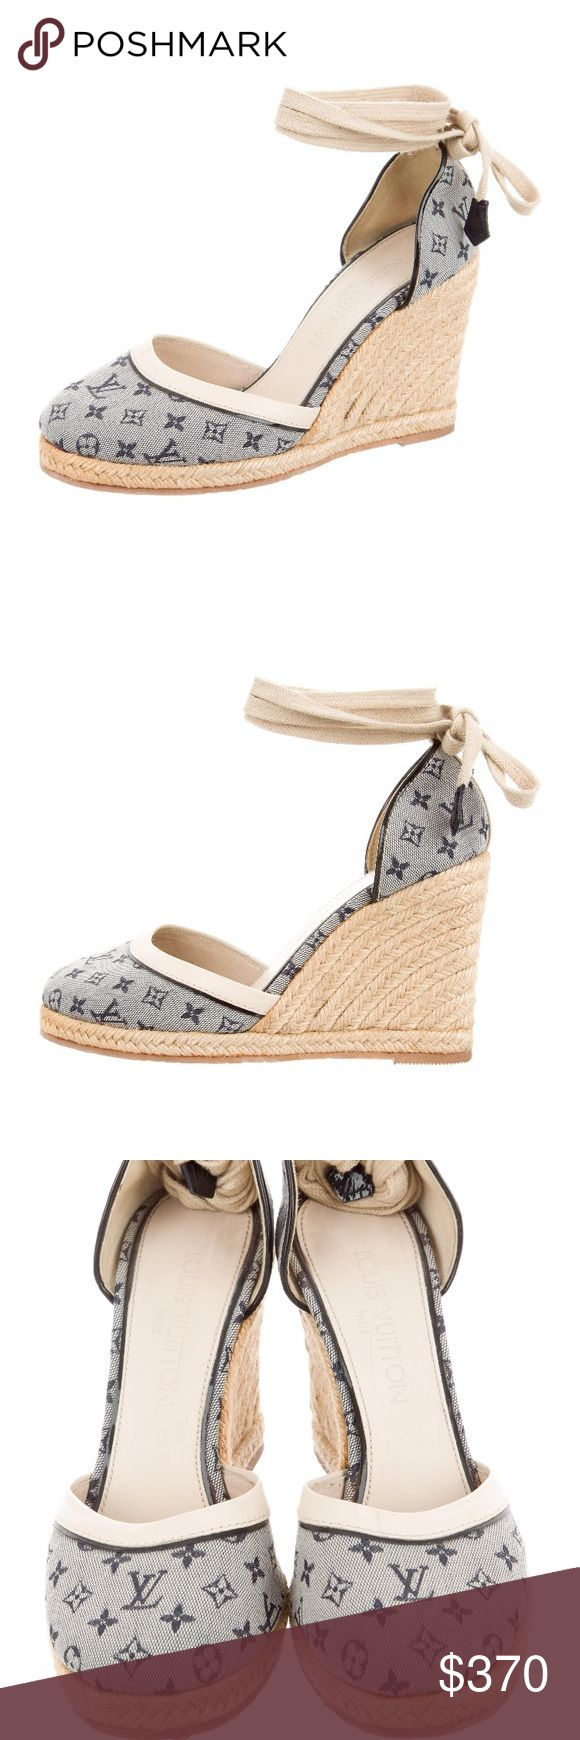 """Louis Vuitton wedges espadrilles Mini Lin authentic Louis Vuitton espadrilles. Blue and tan Louis Vuitton monogram Mini Lin wedge espadrilles with round toes, tan leather trim and ties at ankles. Includes dust bag. Size 36/ US 6 Platforms: 0.5"""" Heels: 4""""  Condition: Very Good. Minor residue at soles. Designer: Louis Vuitton  Item#: LOU139622 Louis Vuitton Shoes Espadrilles"""